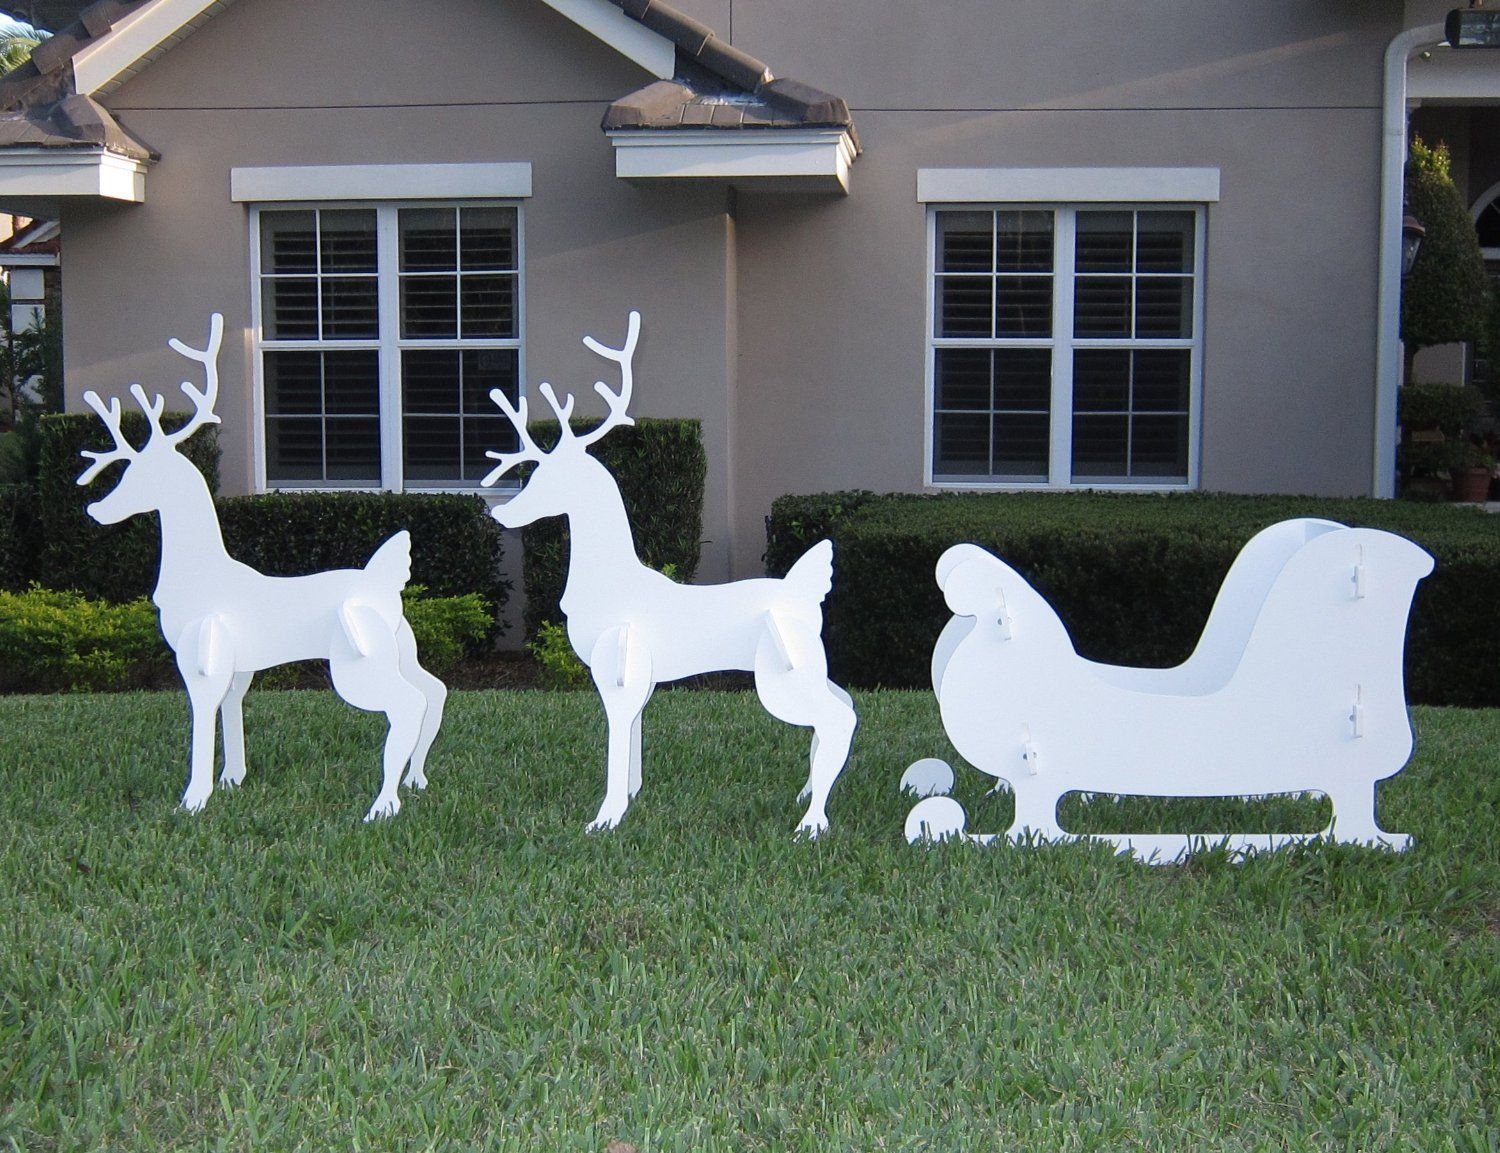 pin rusty campbell on reindeer outdoor christmas decorations jpg 1500x1153 white wood reindeer lawn decorations - Outdoor Wooden Reindeer Christmas Decorations